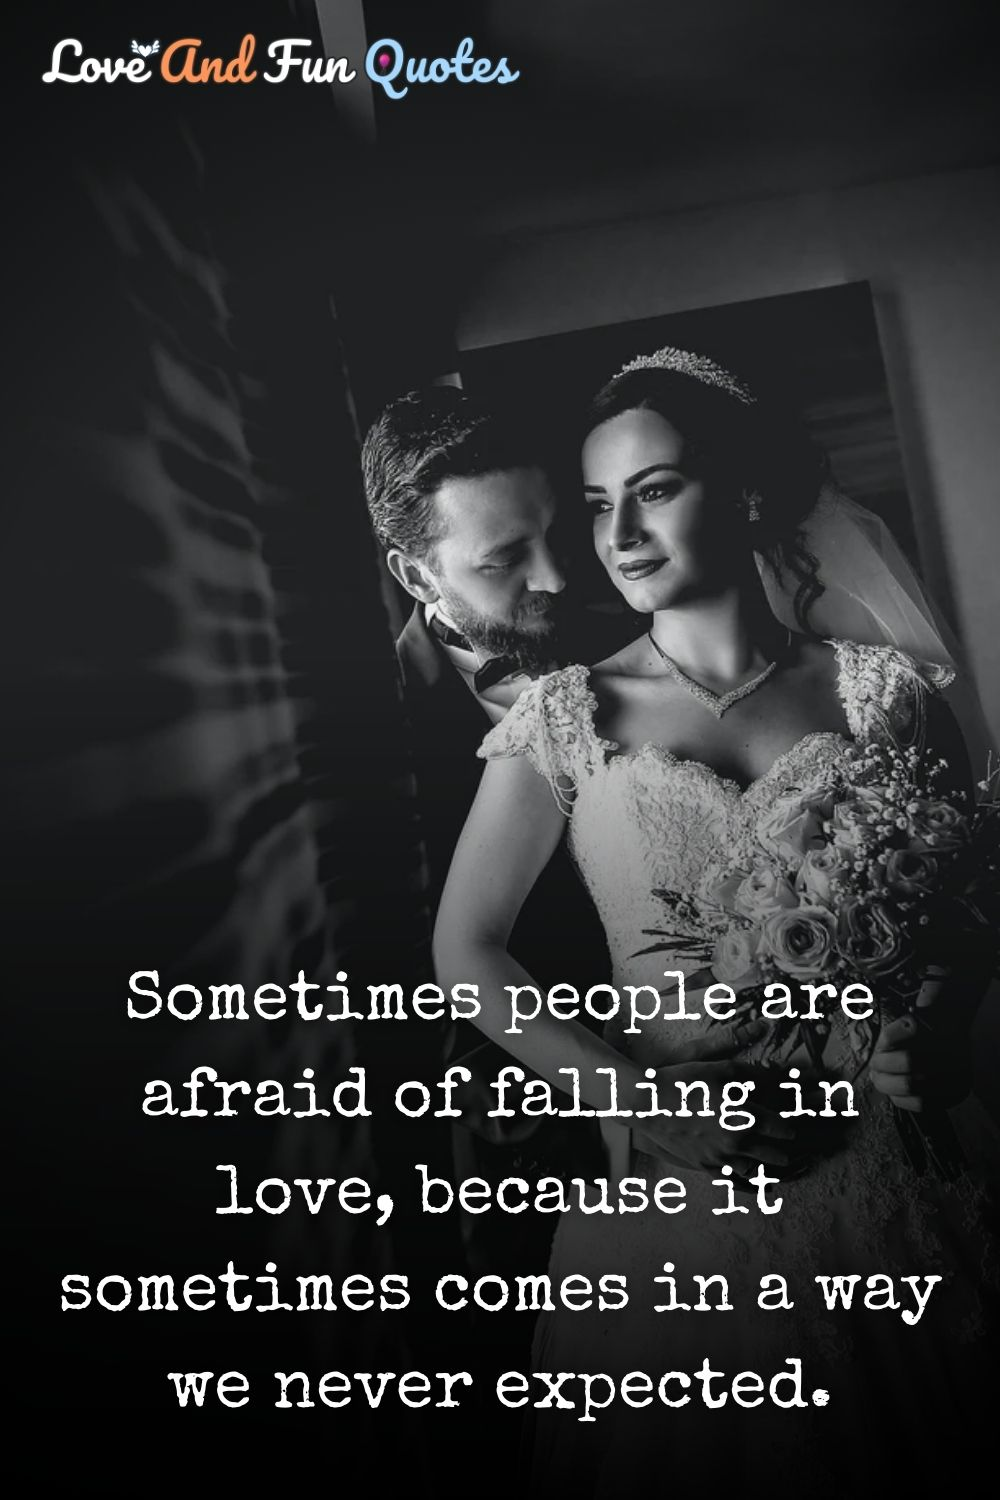 Sometimes people are afraid of falling in love, because it sometimes comes in a way we never expected.